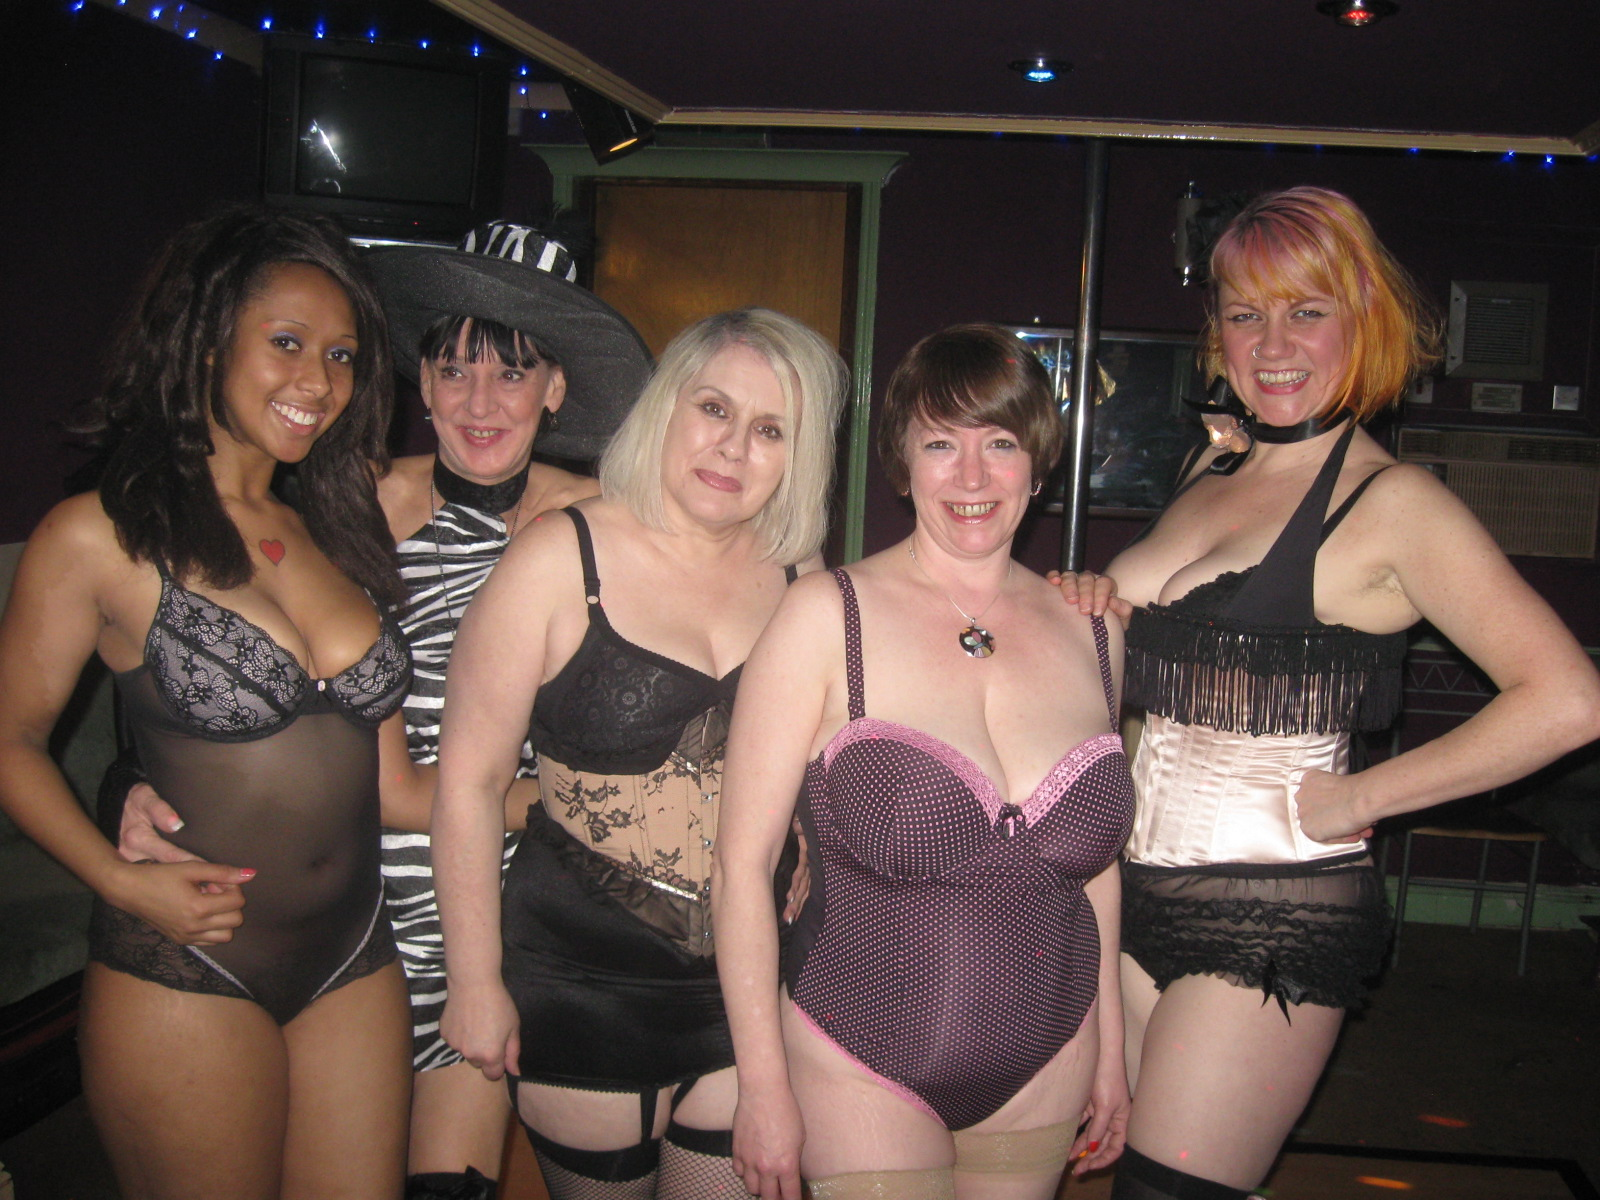 @ spanking party What they all are is well experienced on the spanking scene, charming,  naughty and welcoming. They range from nationally known spanking models to  new girls ...